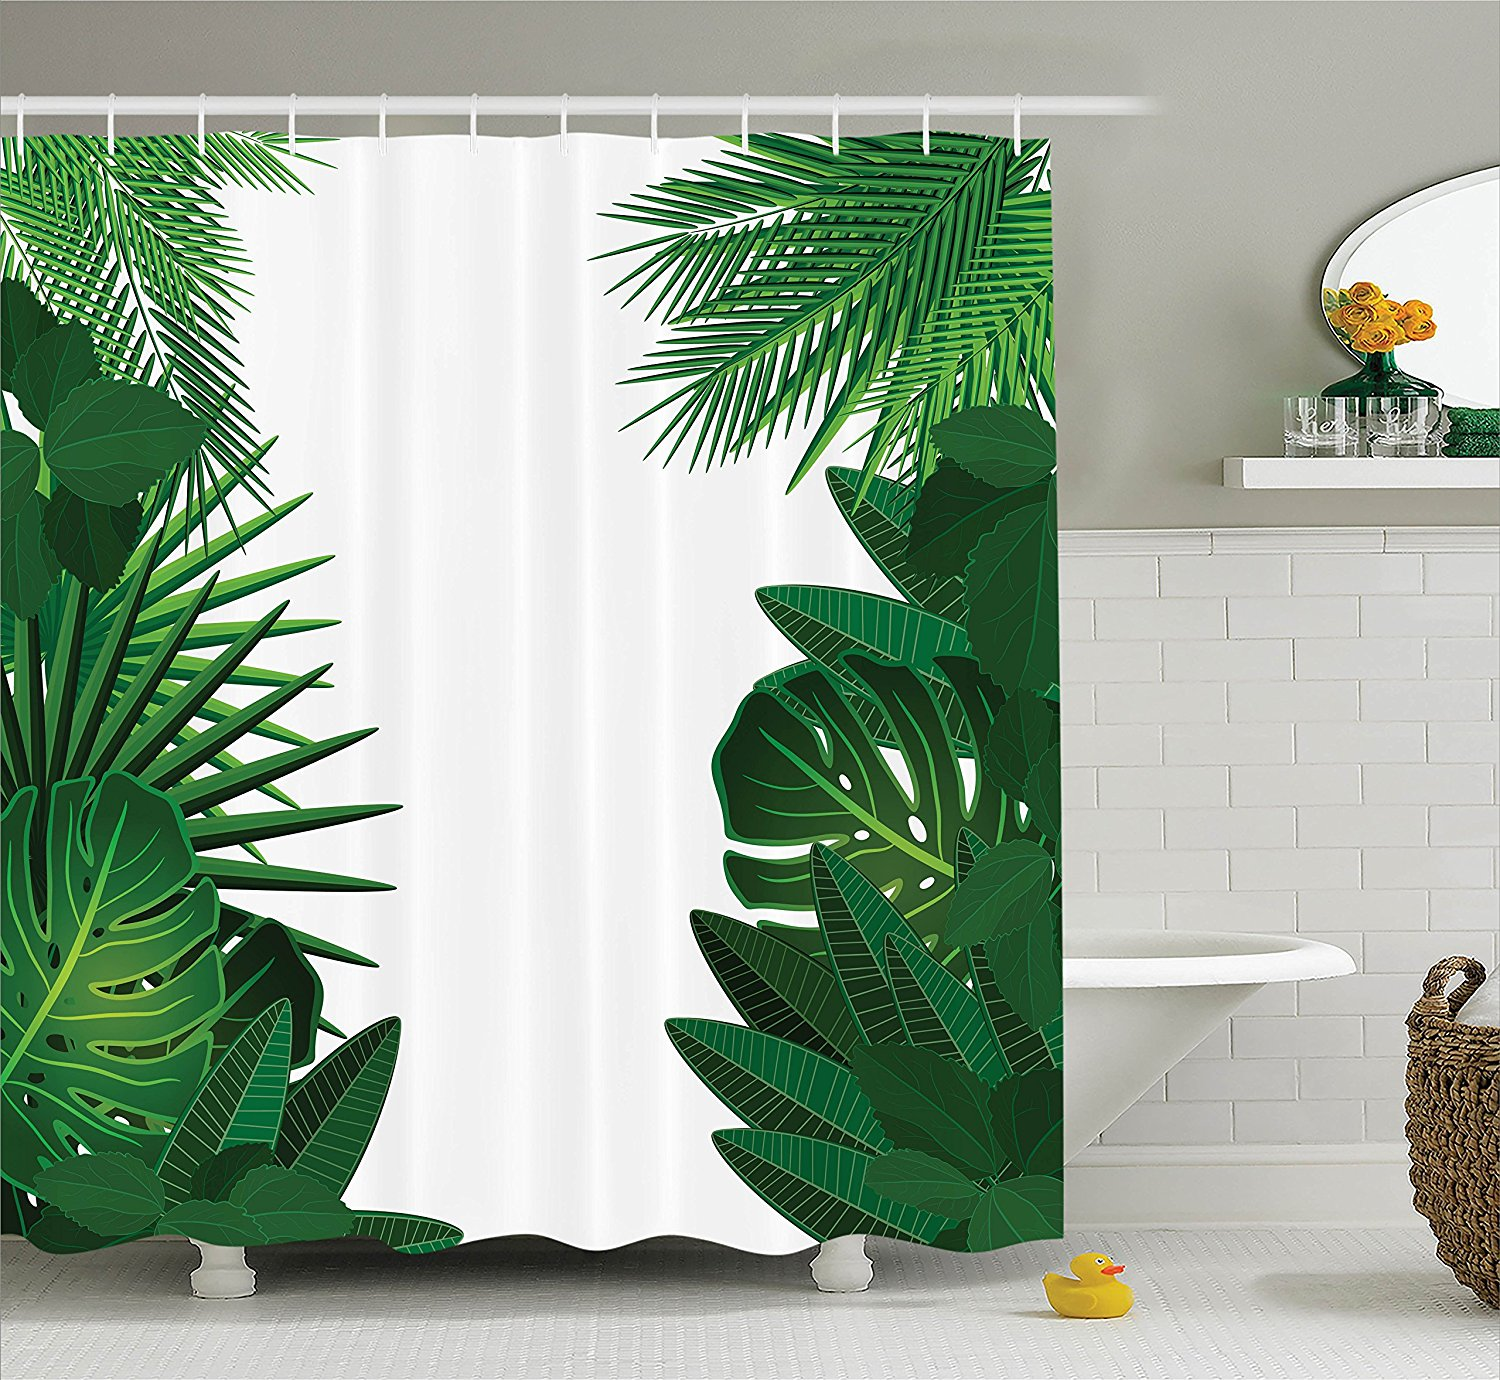 Palm shower curtain - Memory Home Leaves Shower Curtain Hawaiian Tropical Palm Leaves With Stylish Floral Bathroom Accessories Green White